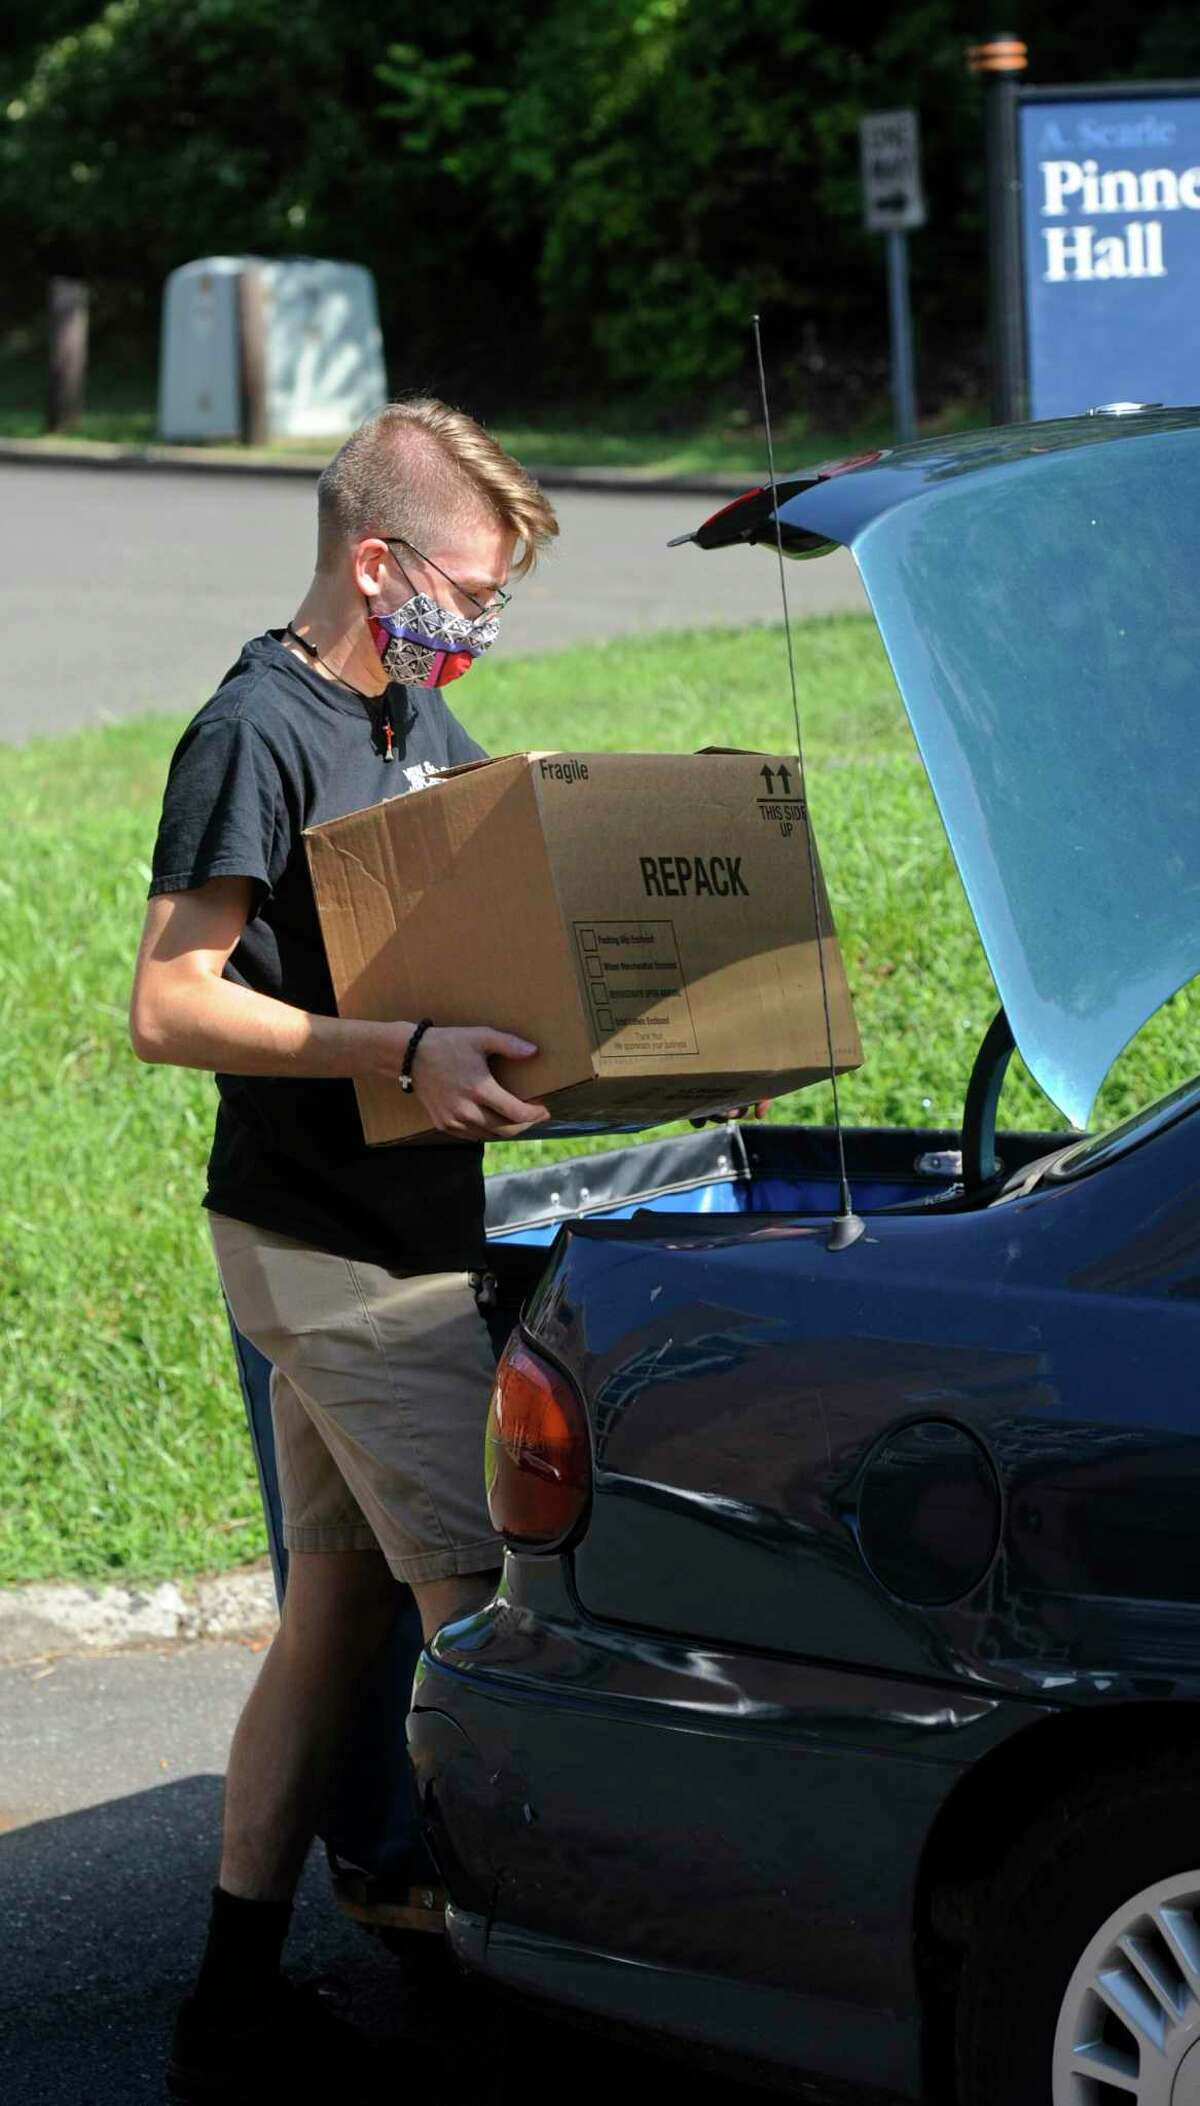 Adam Jackson, of Branford, a junior music education major, unpacks his car while moving into his Western Connecticut State University westside campus dorm. Tuesday, August 24, 2021, Danbury, Conn.